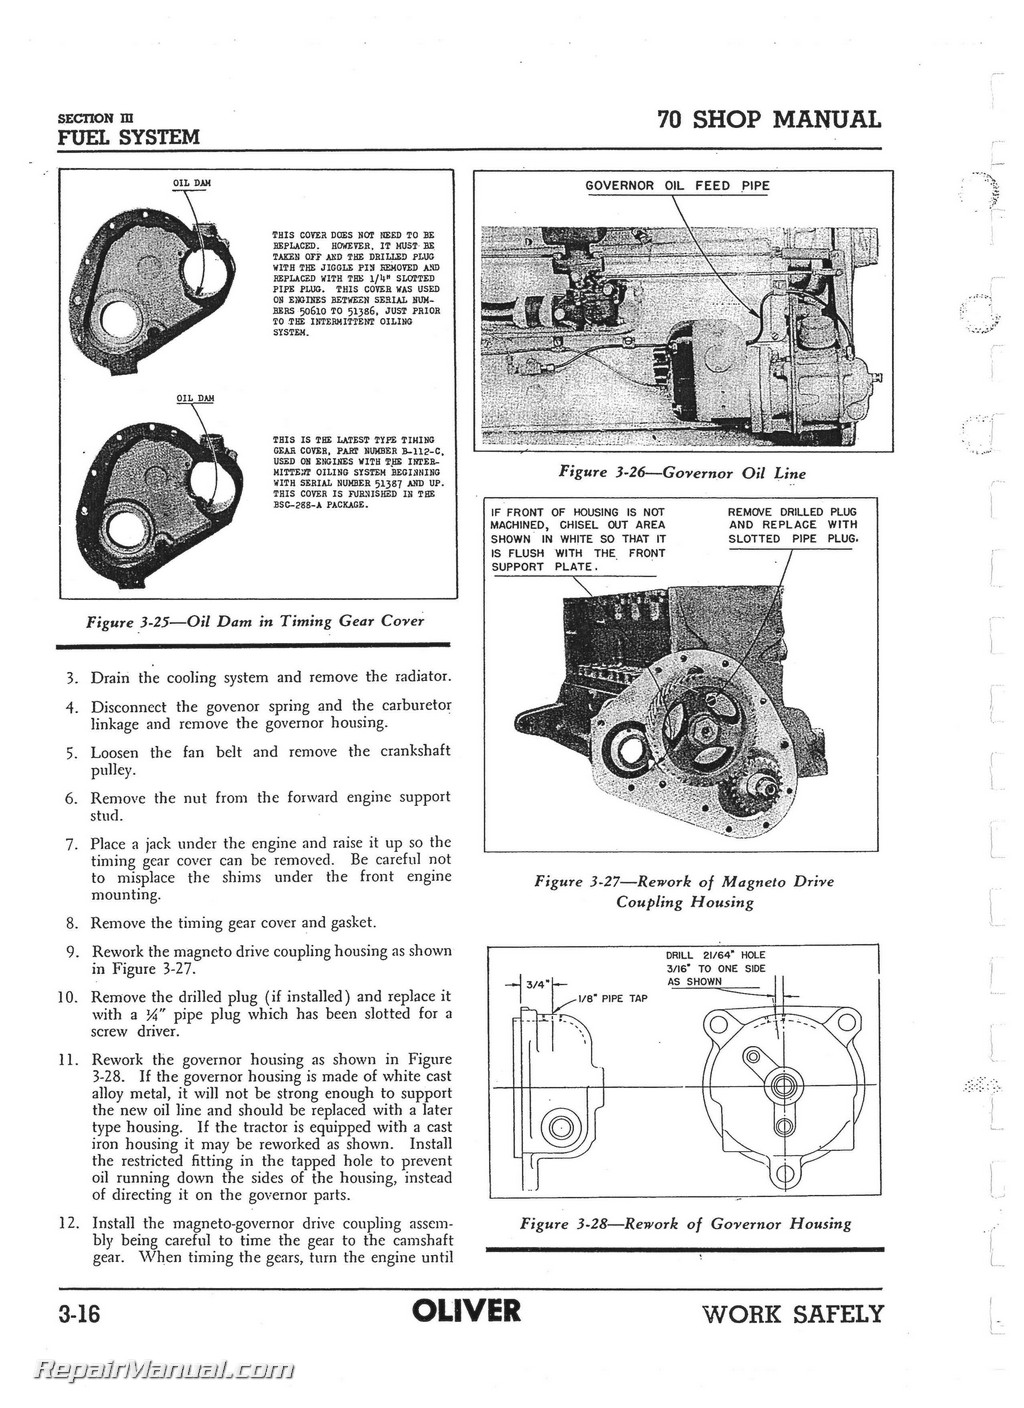 Oliver 70 Wiring Diagram Magneto Great Installation Of International Harvester M Wire Row Crop Tractor Service Manual Rh Repairmanual Com Briggs Diagrams Small Engine